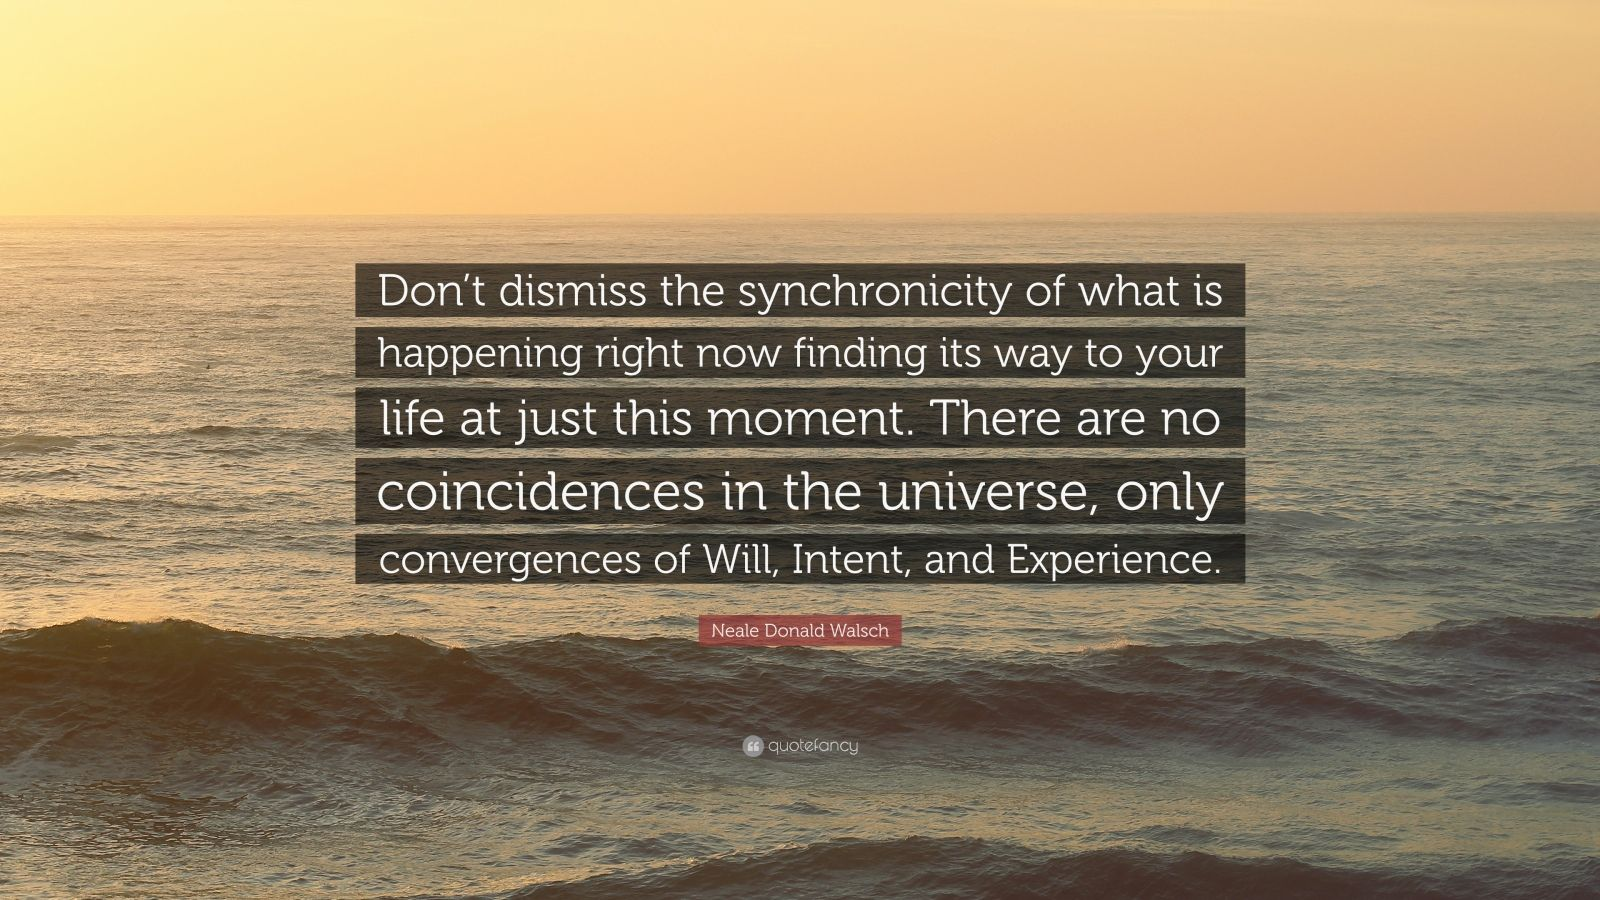 """Neale Donald Walsch Quote: """"Don't dismiss the synchronicity of what is happening right now finding its way to your life at just this moment. There are no coincidences in the universe, only convergences of Will, Intent, and Experience."""""""